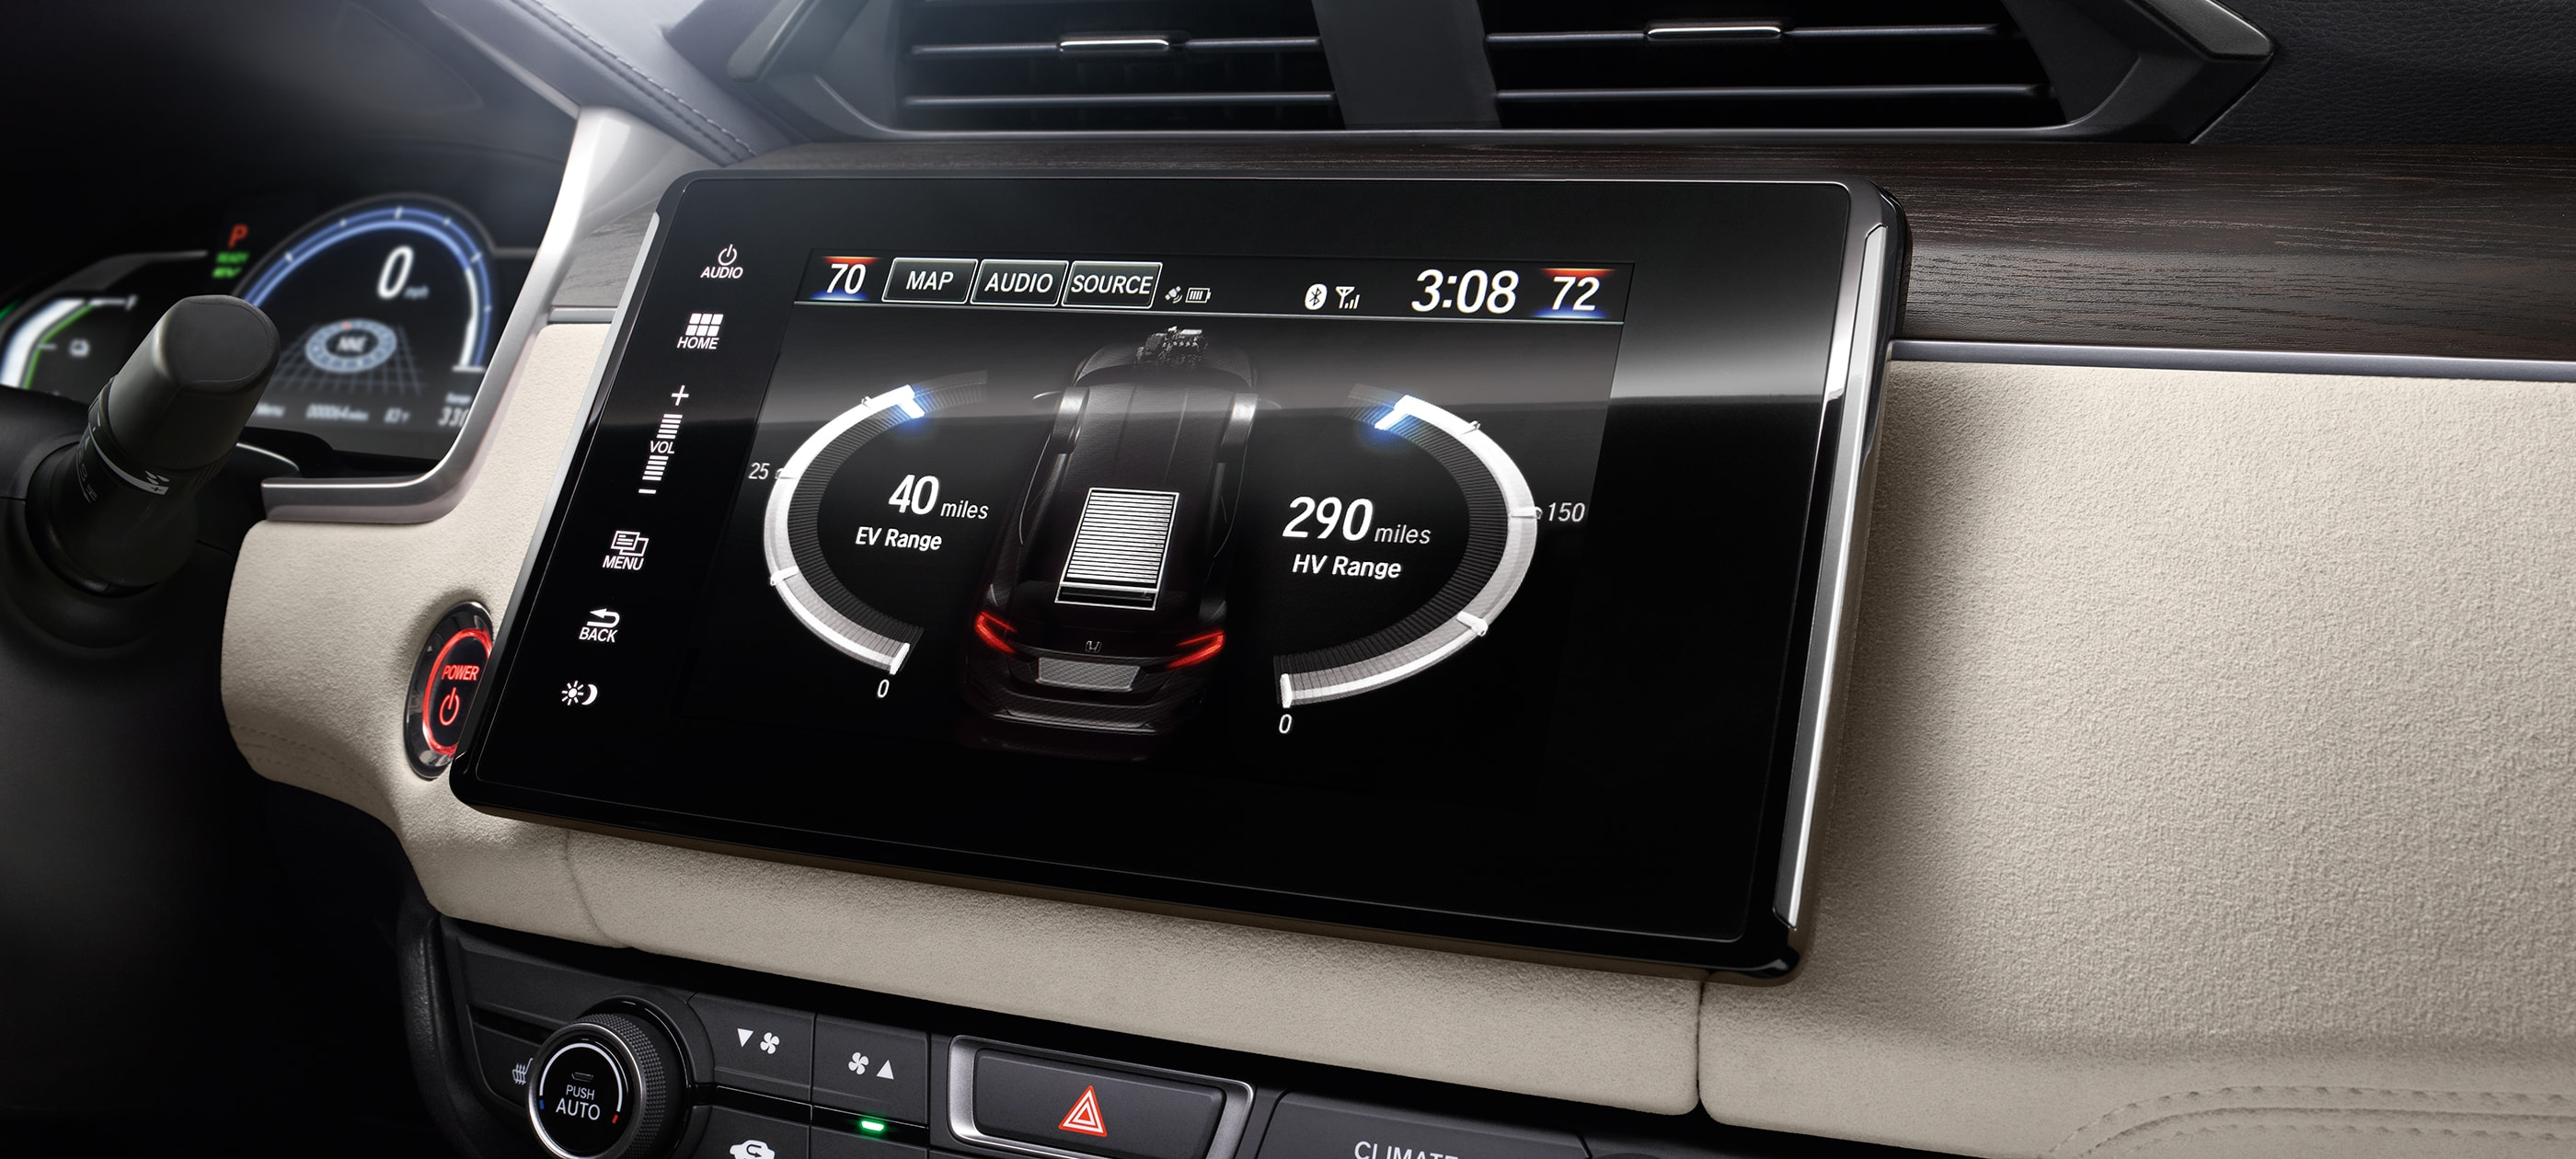 Display Audio touch-screen detail in 2019 Honda Clairty PHEV with beige interior.